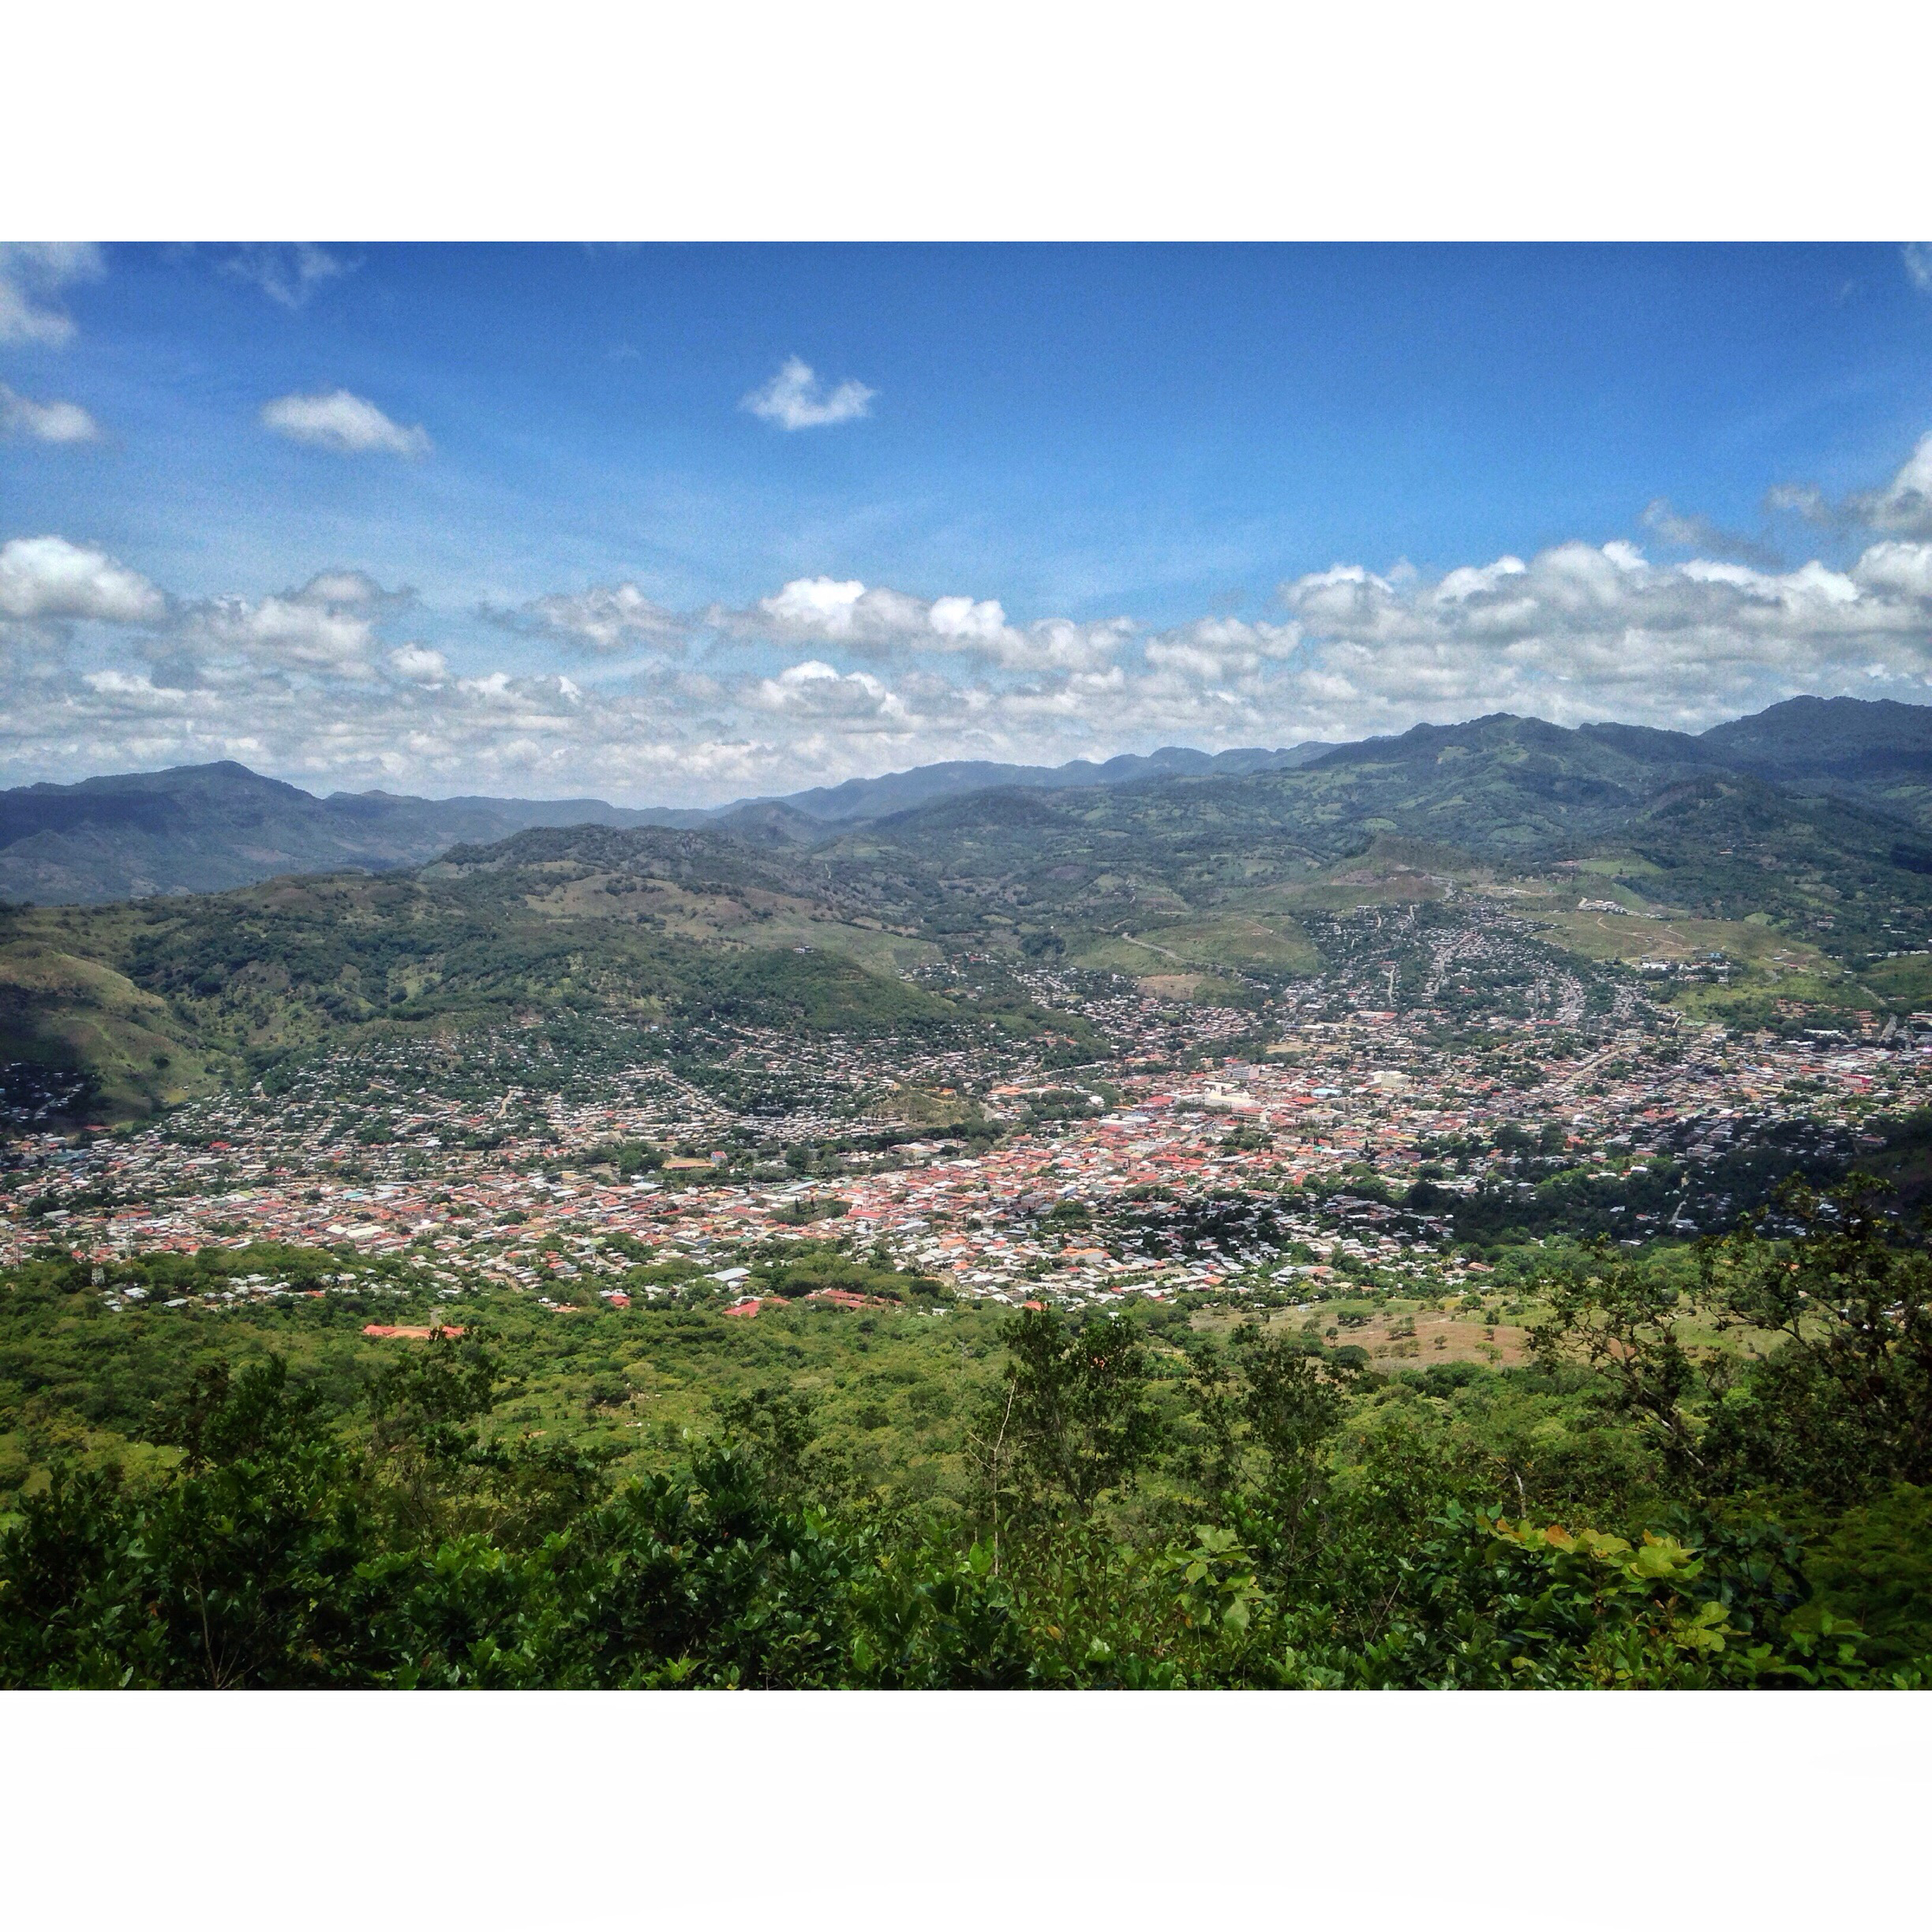 The view of Matagalpa, Nica from Cerro Apante.